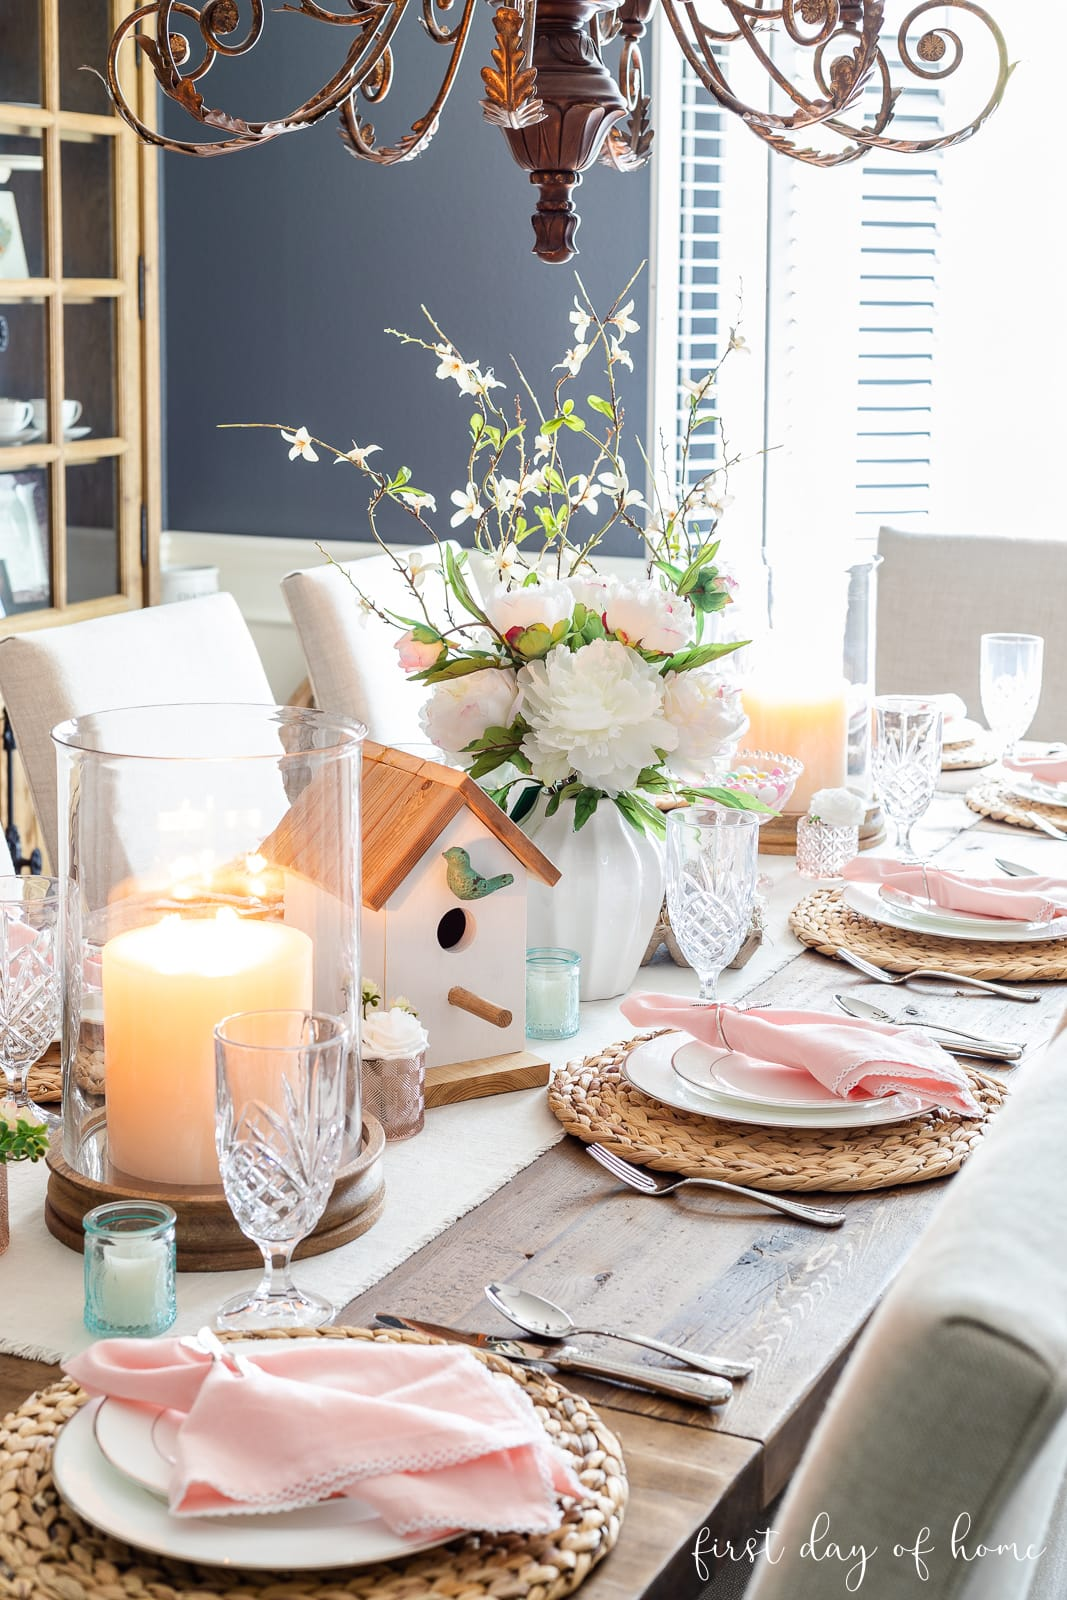 Spring table decor with birdhouse, pillar candles and pastel accents